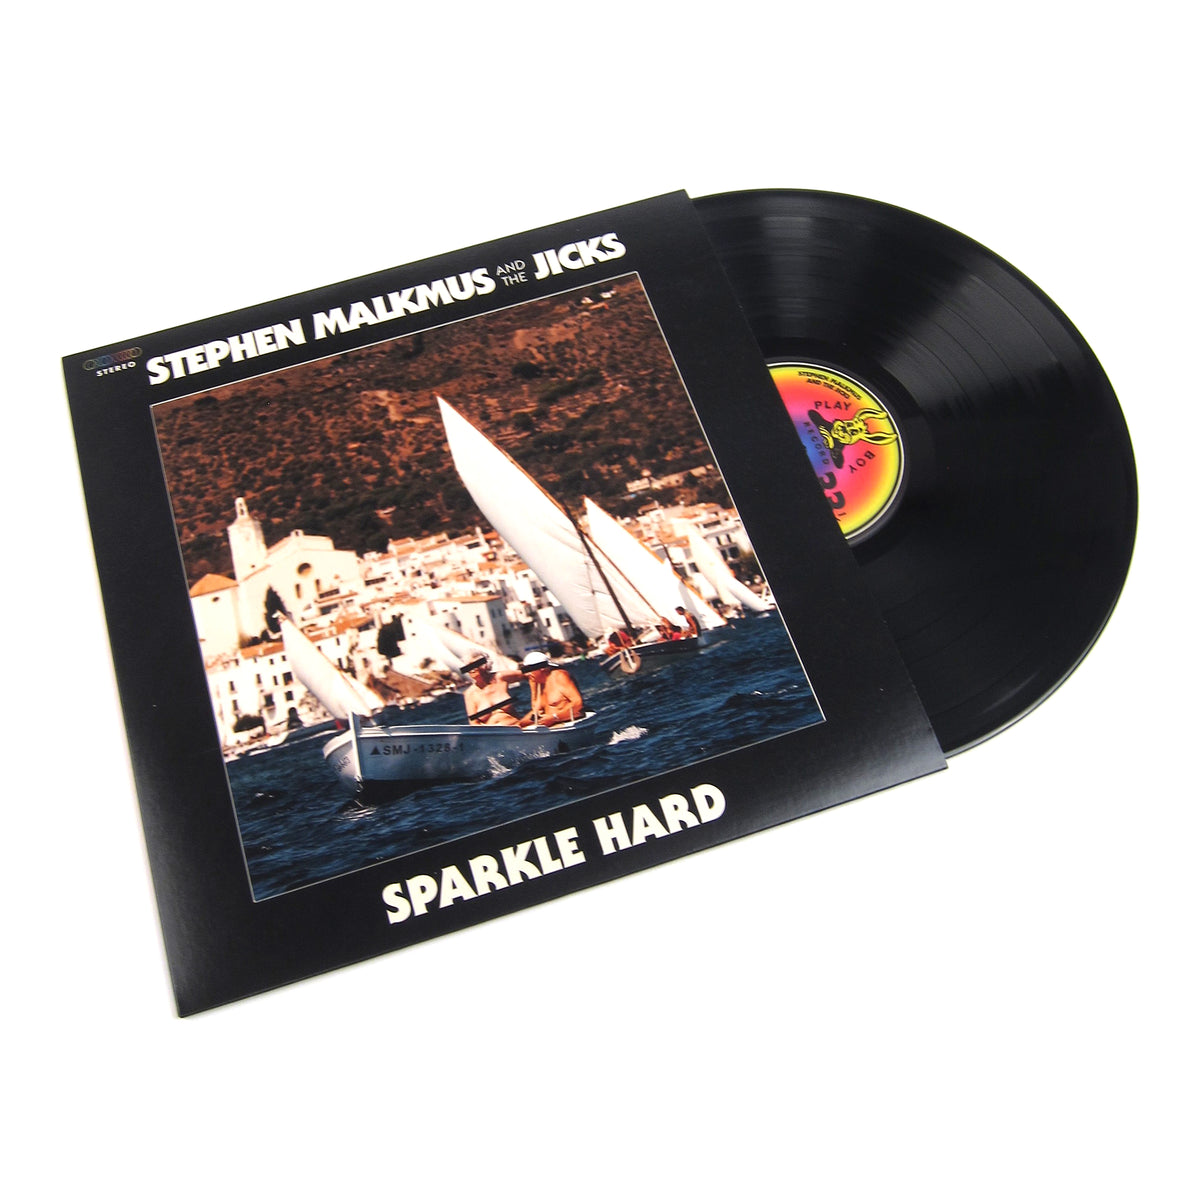 Stephen Malkmus And The Jicks: Sparkle Hard Vinyl LP